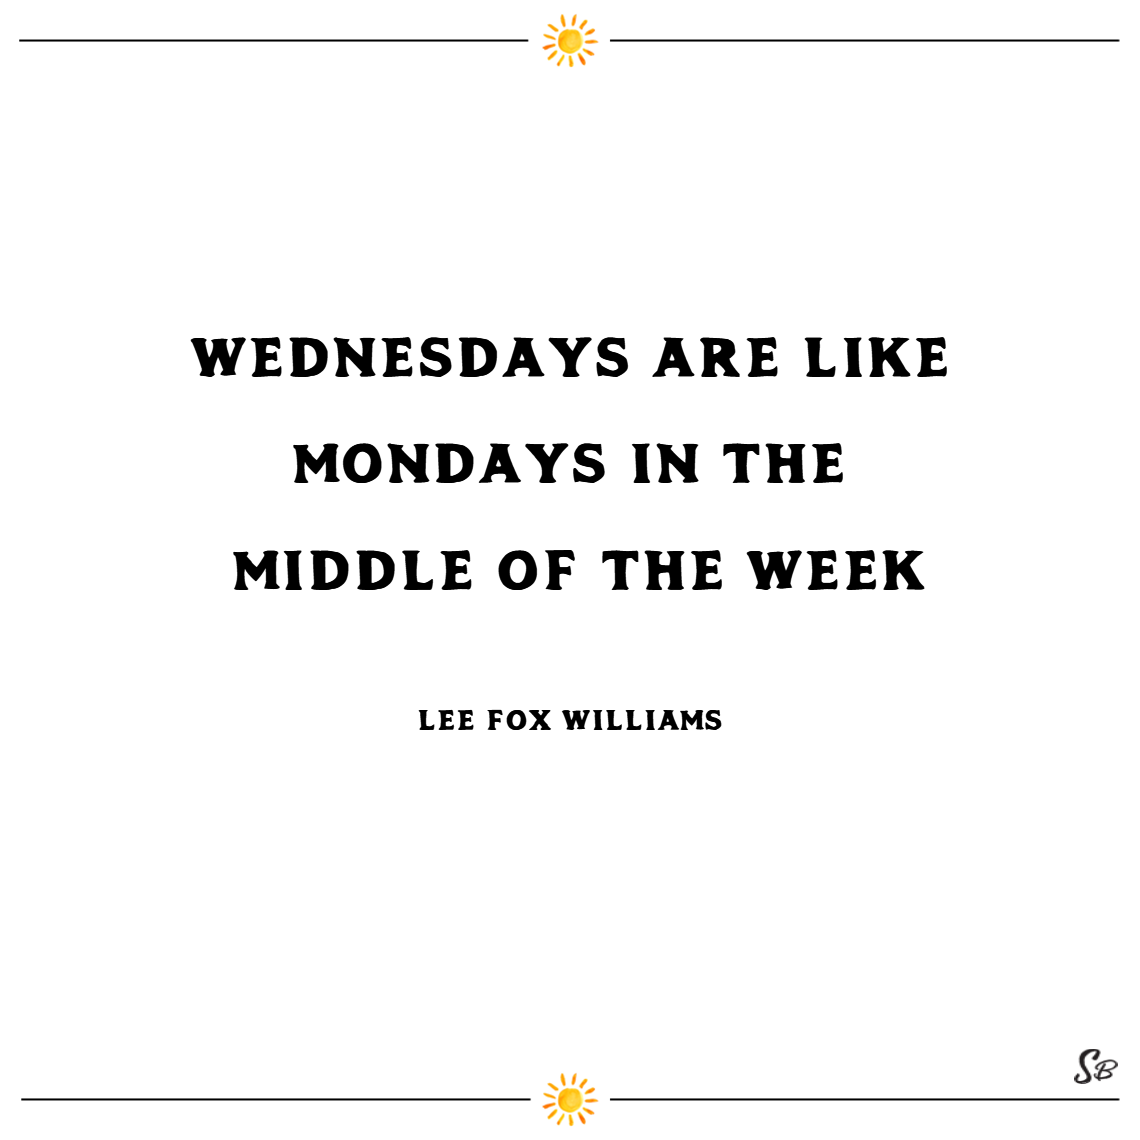 Week Quotes 31 Awesome Wednesday Quotes To Push Through The Week  Spirit Button